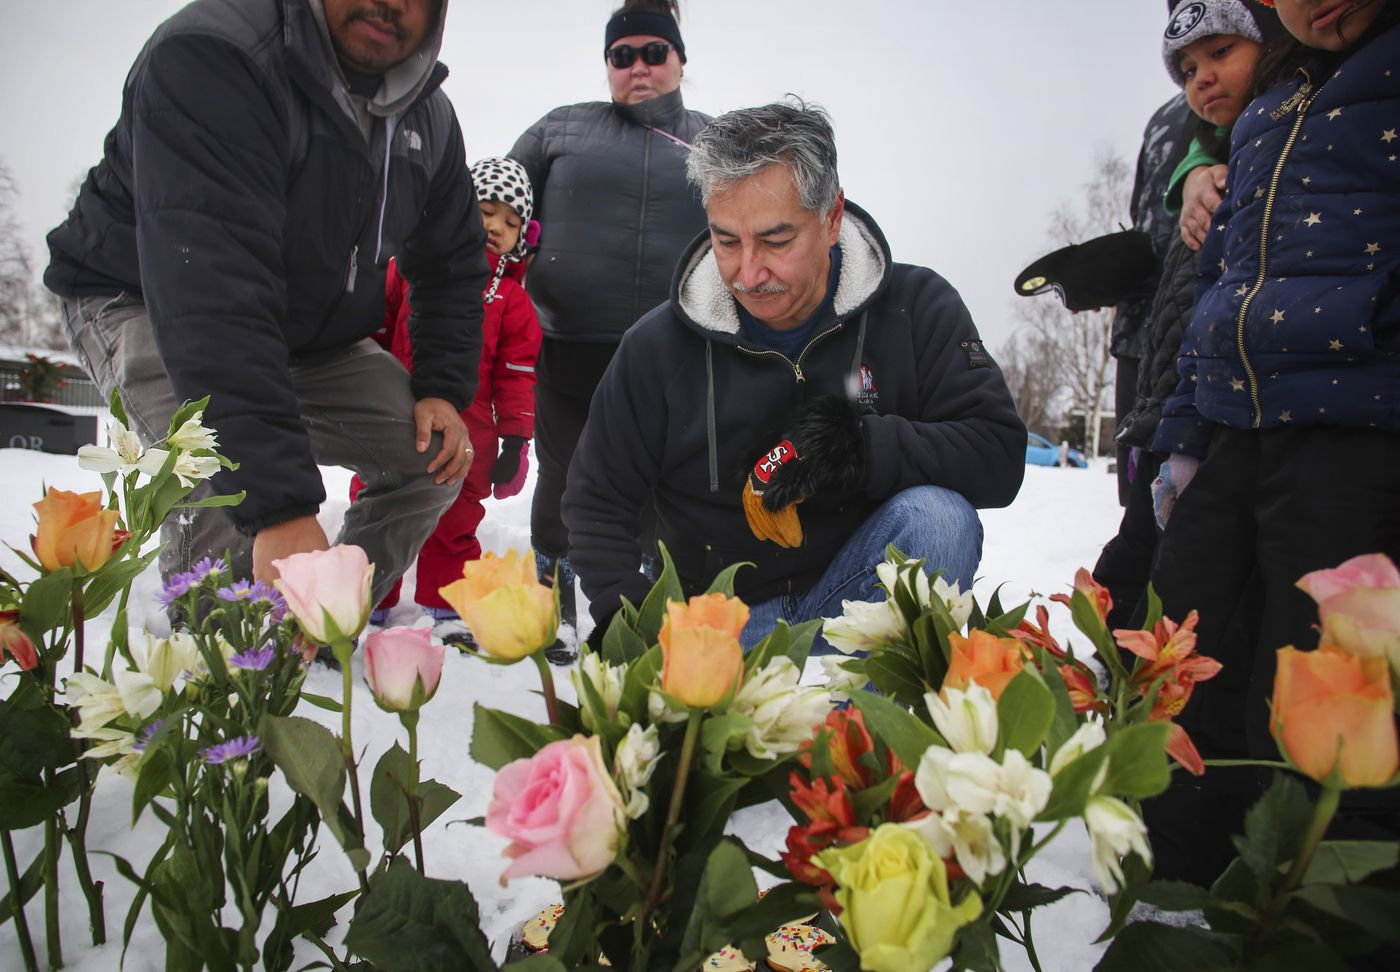 Scott Wells places a flower in the snow behind the grave marker for his partner, Amanda Bouffioux, as he and her family celebrate her birthday at the Anchorage Memorial Park Cemetery on Saturday, Dec. 26, 2020. Bouffioux tested positive for COVID-19 in August and spent three weeks on a ventilator before she died Sept. 8. The family celebrated by singing 'Happy Birthday ', eating cupcakes and listening to 'He Stopped Loving Her Today ', a song by Bouffioux's favorite singer, George Jones. The cupcakes were wrapped in her favorite color, purple. She would have turned 45 years old. (Emily Mesner / ADN)